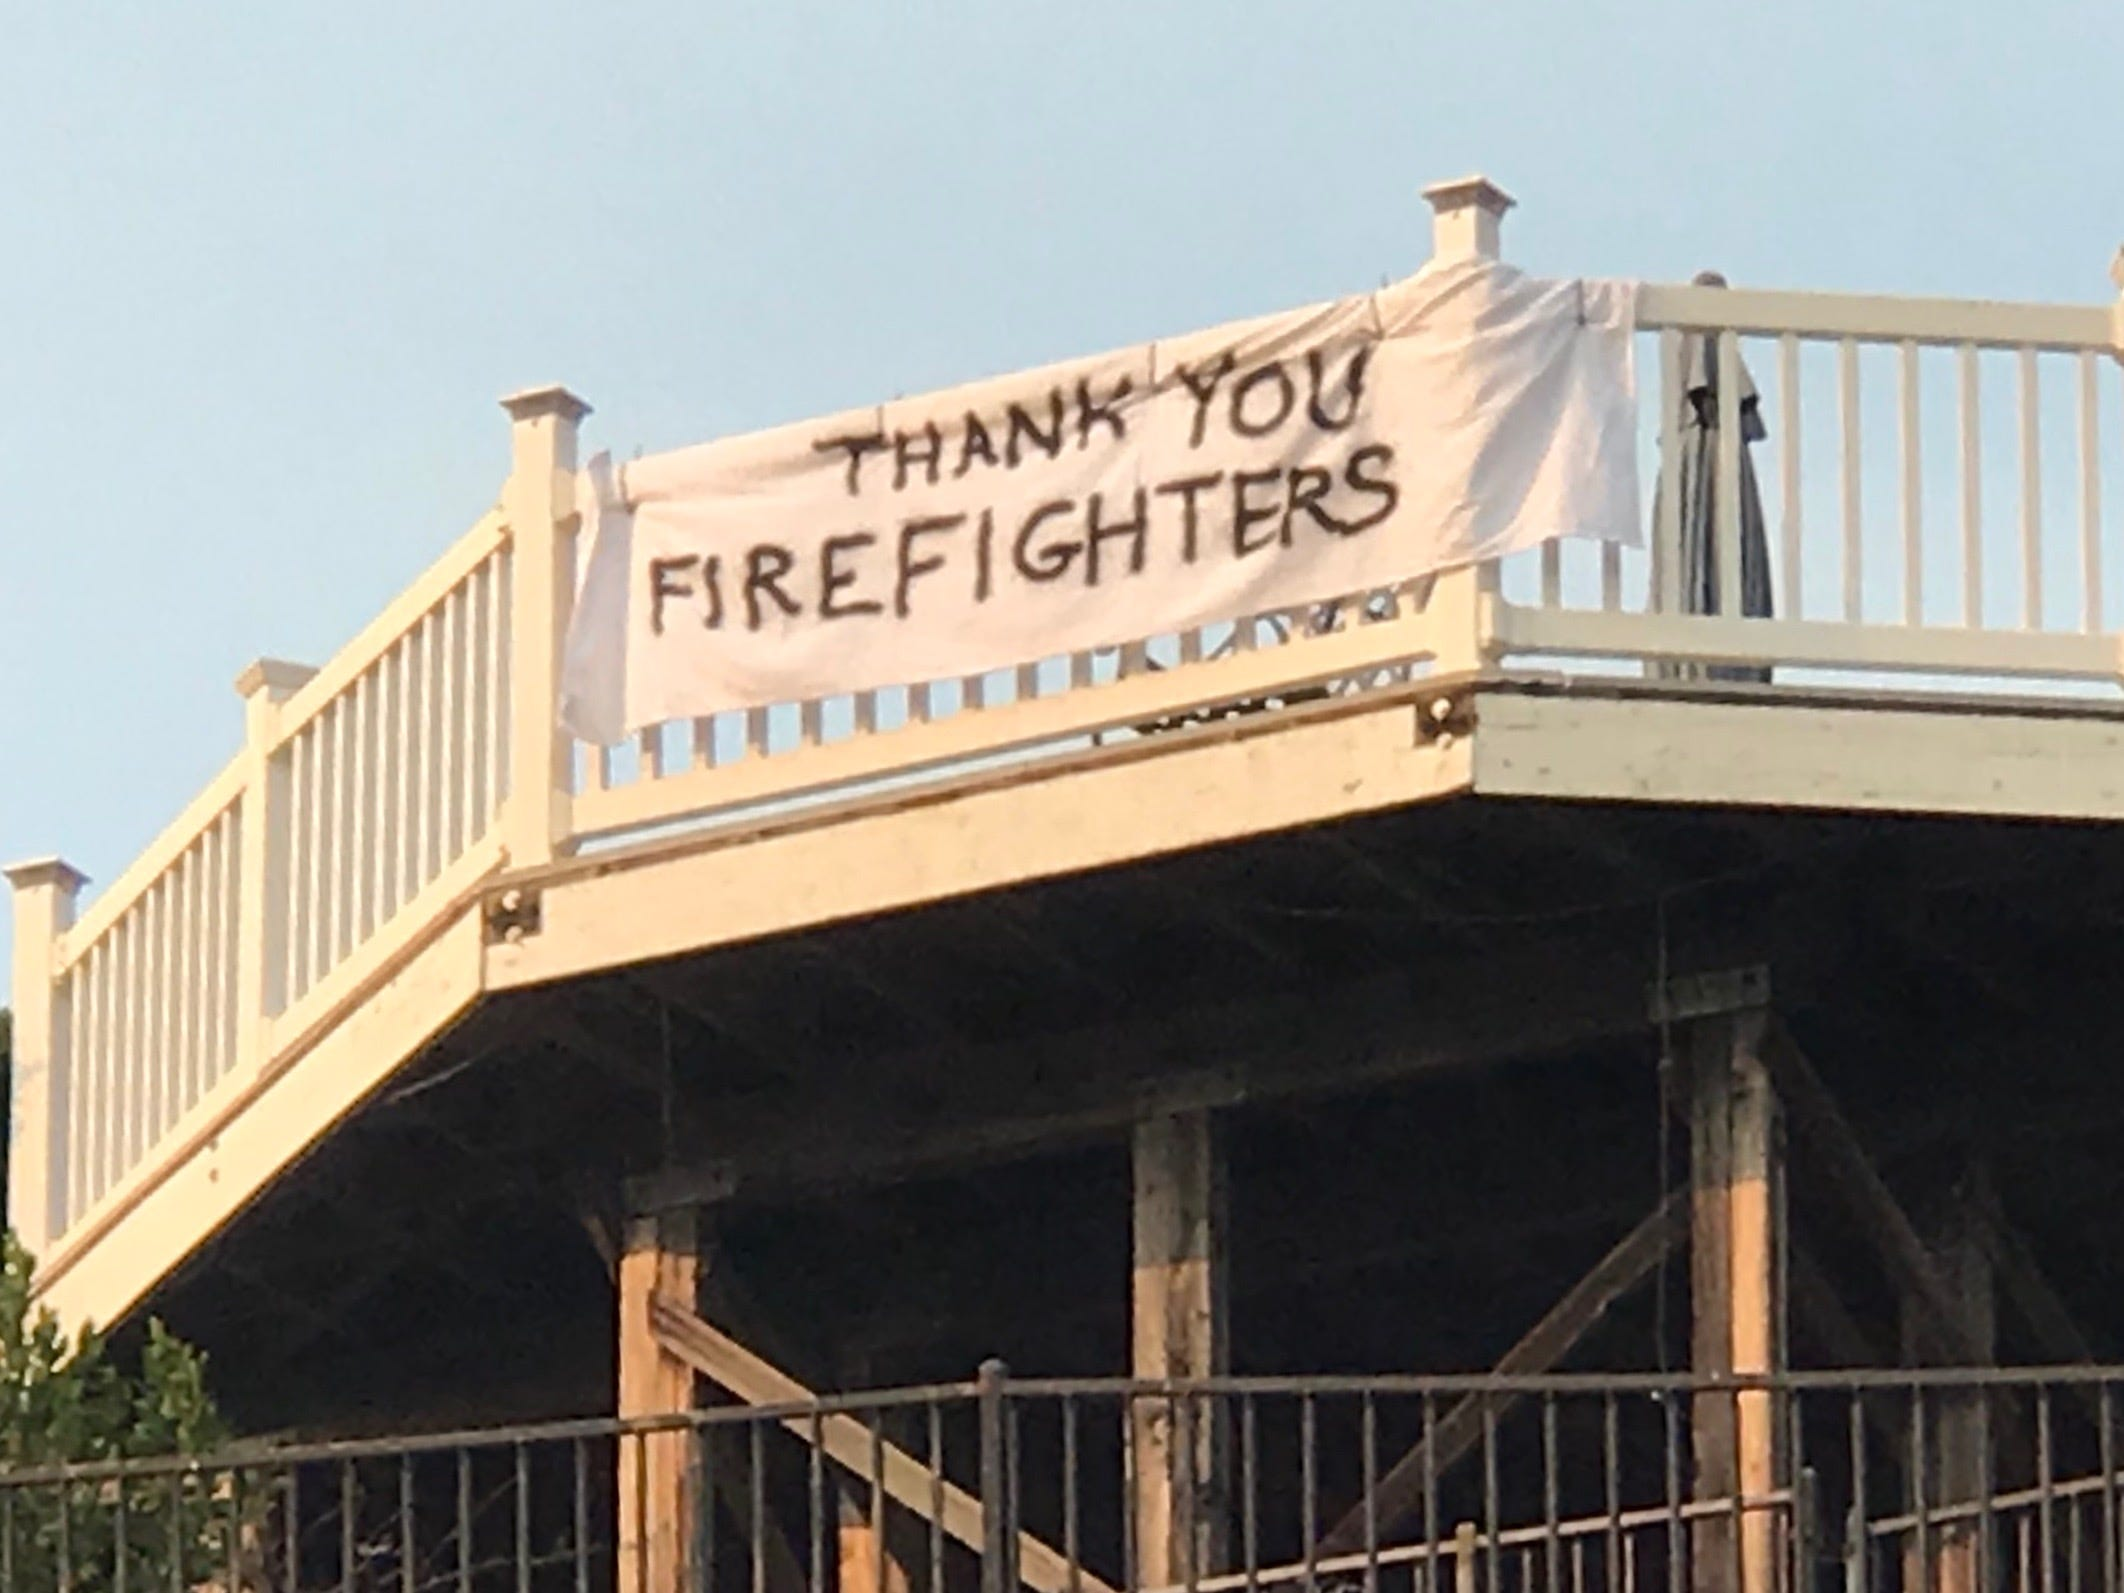 A sign on a home on Glenbridge Road in Westlake Village Saturday thanks firefighters.